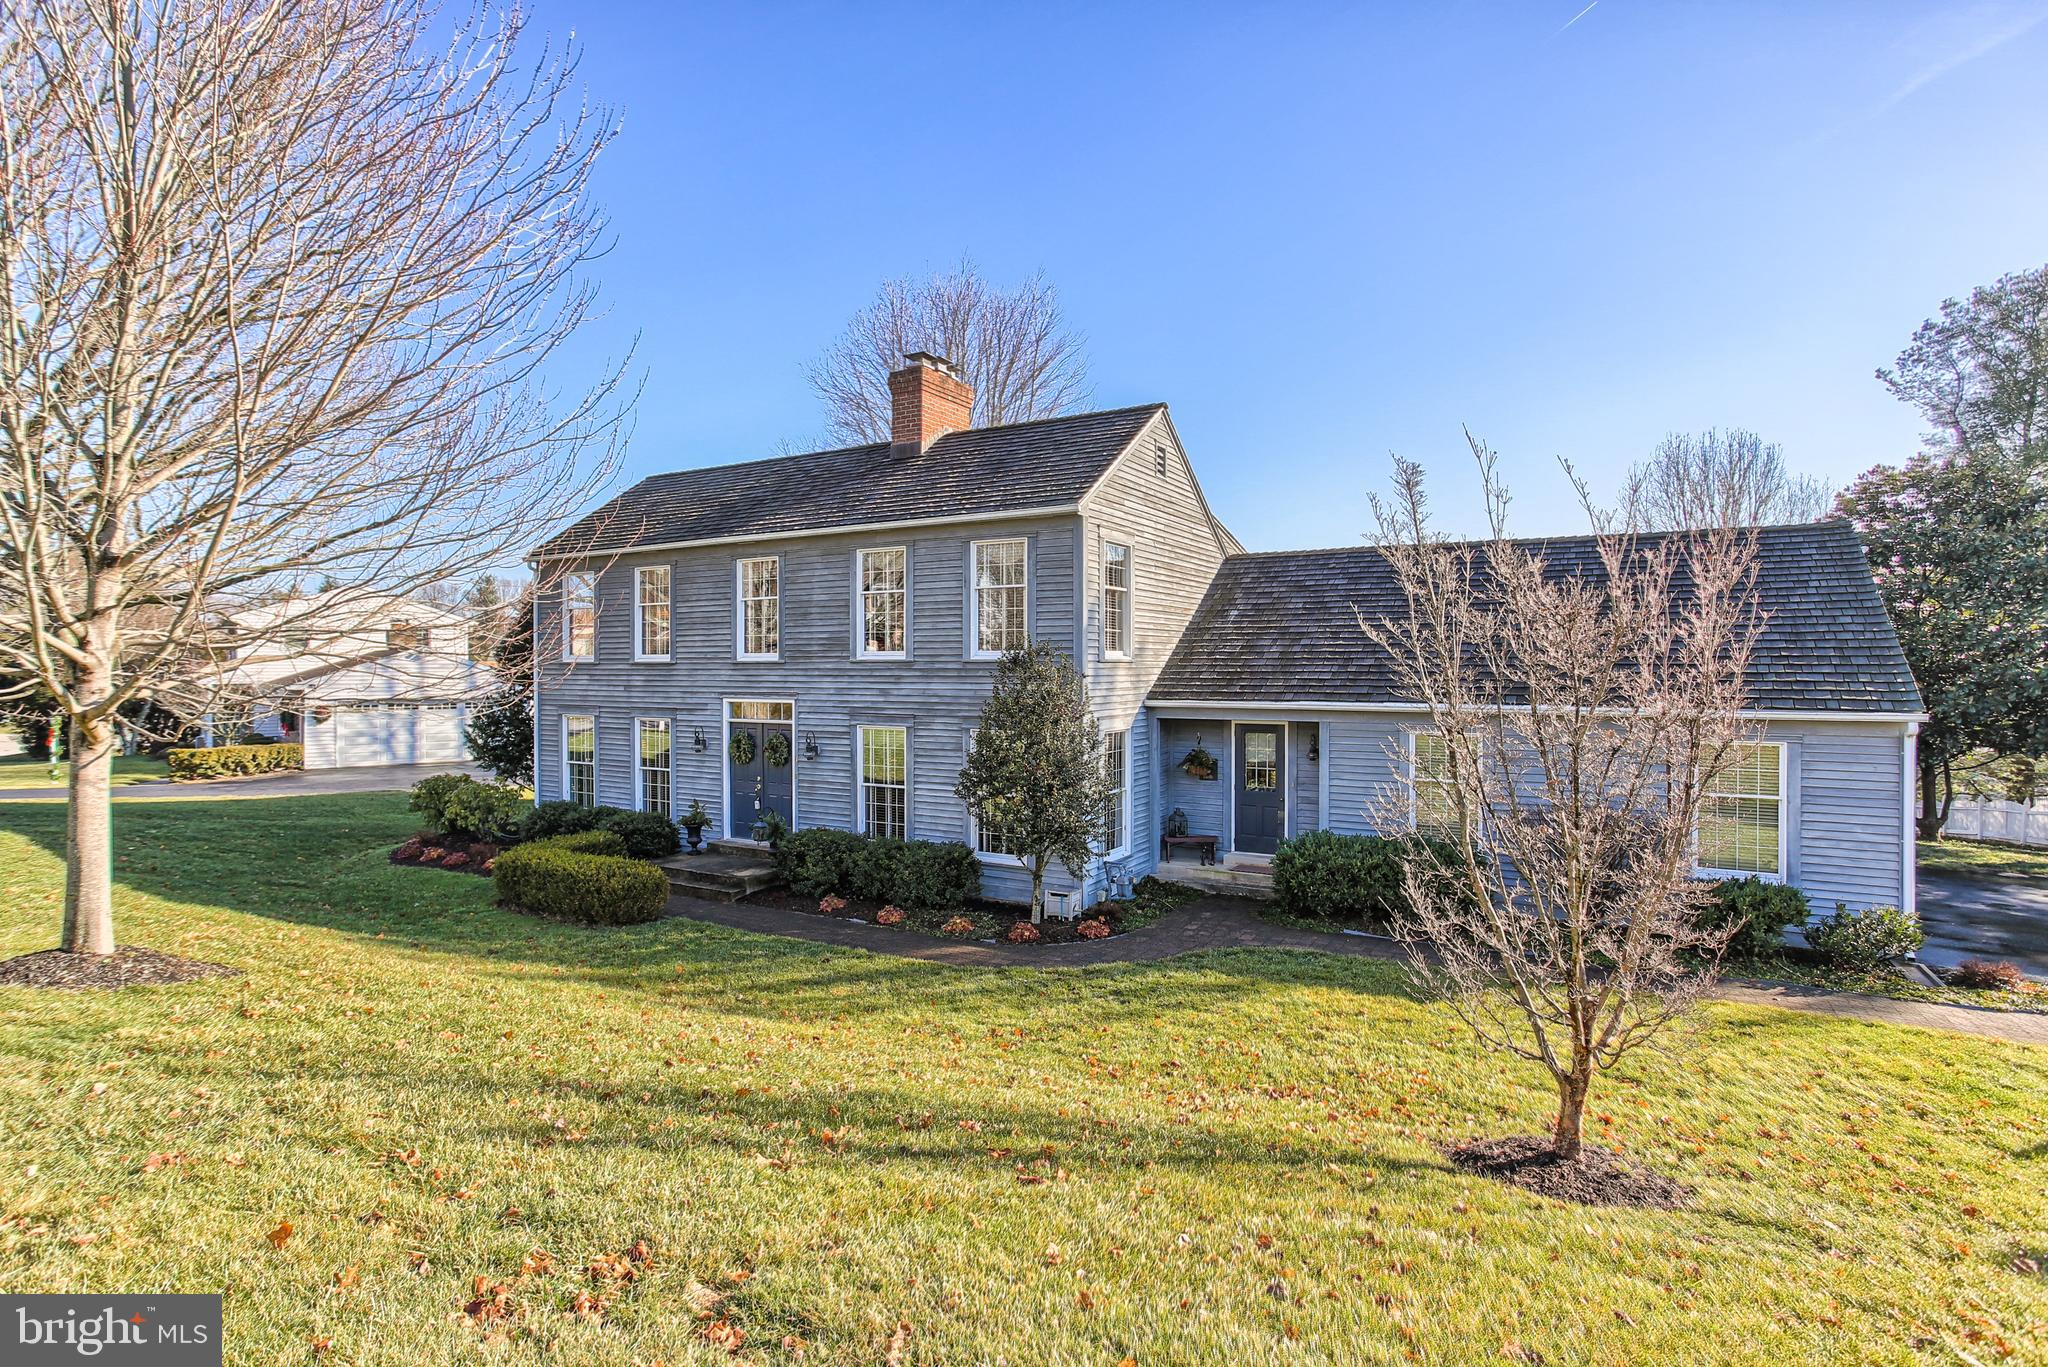 11 STONE RIDGE DRIVE, NEW FREEDOM, PA 17349